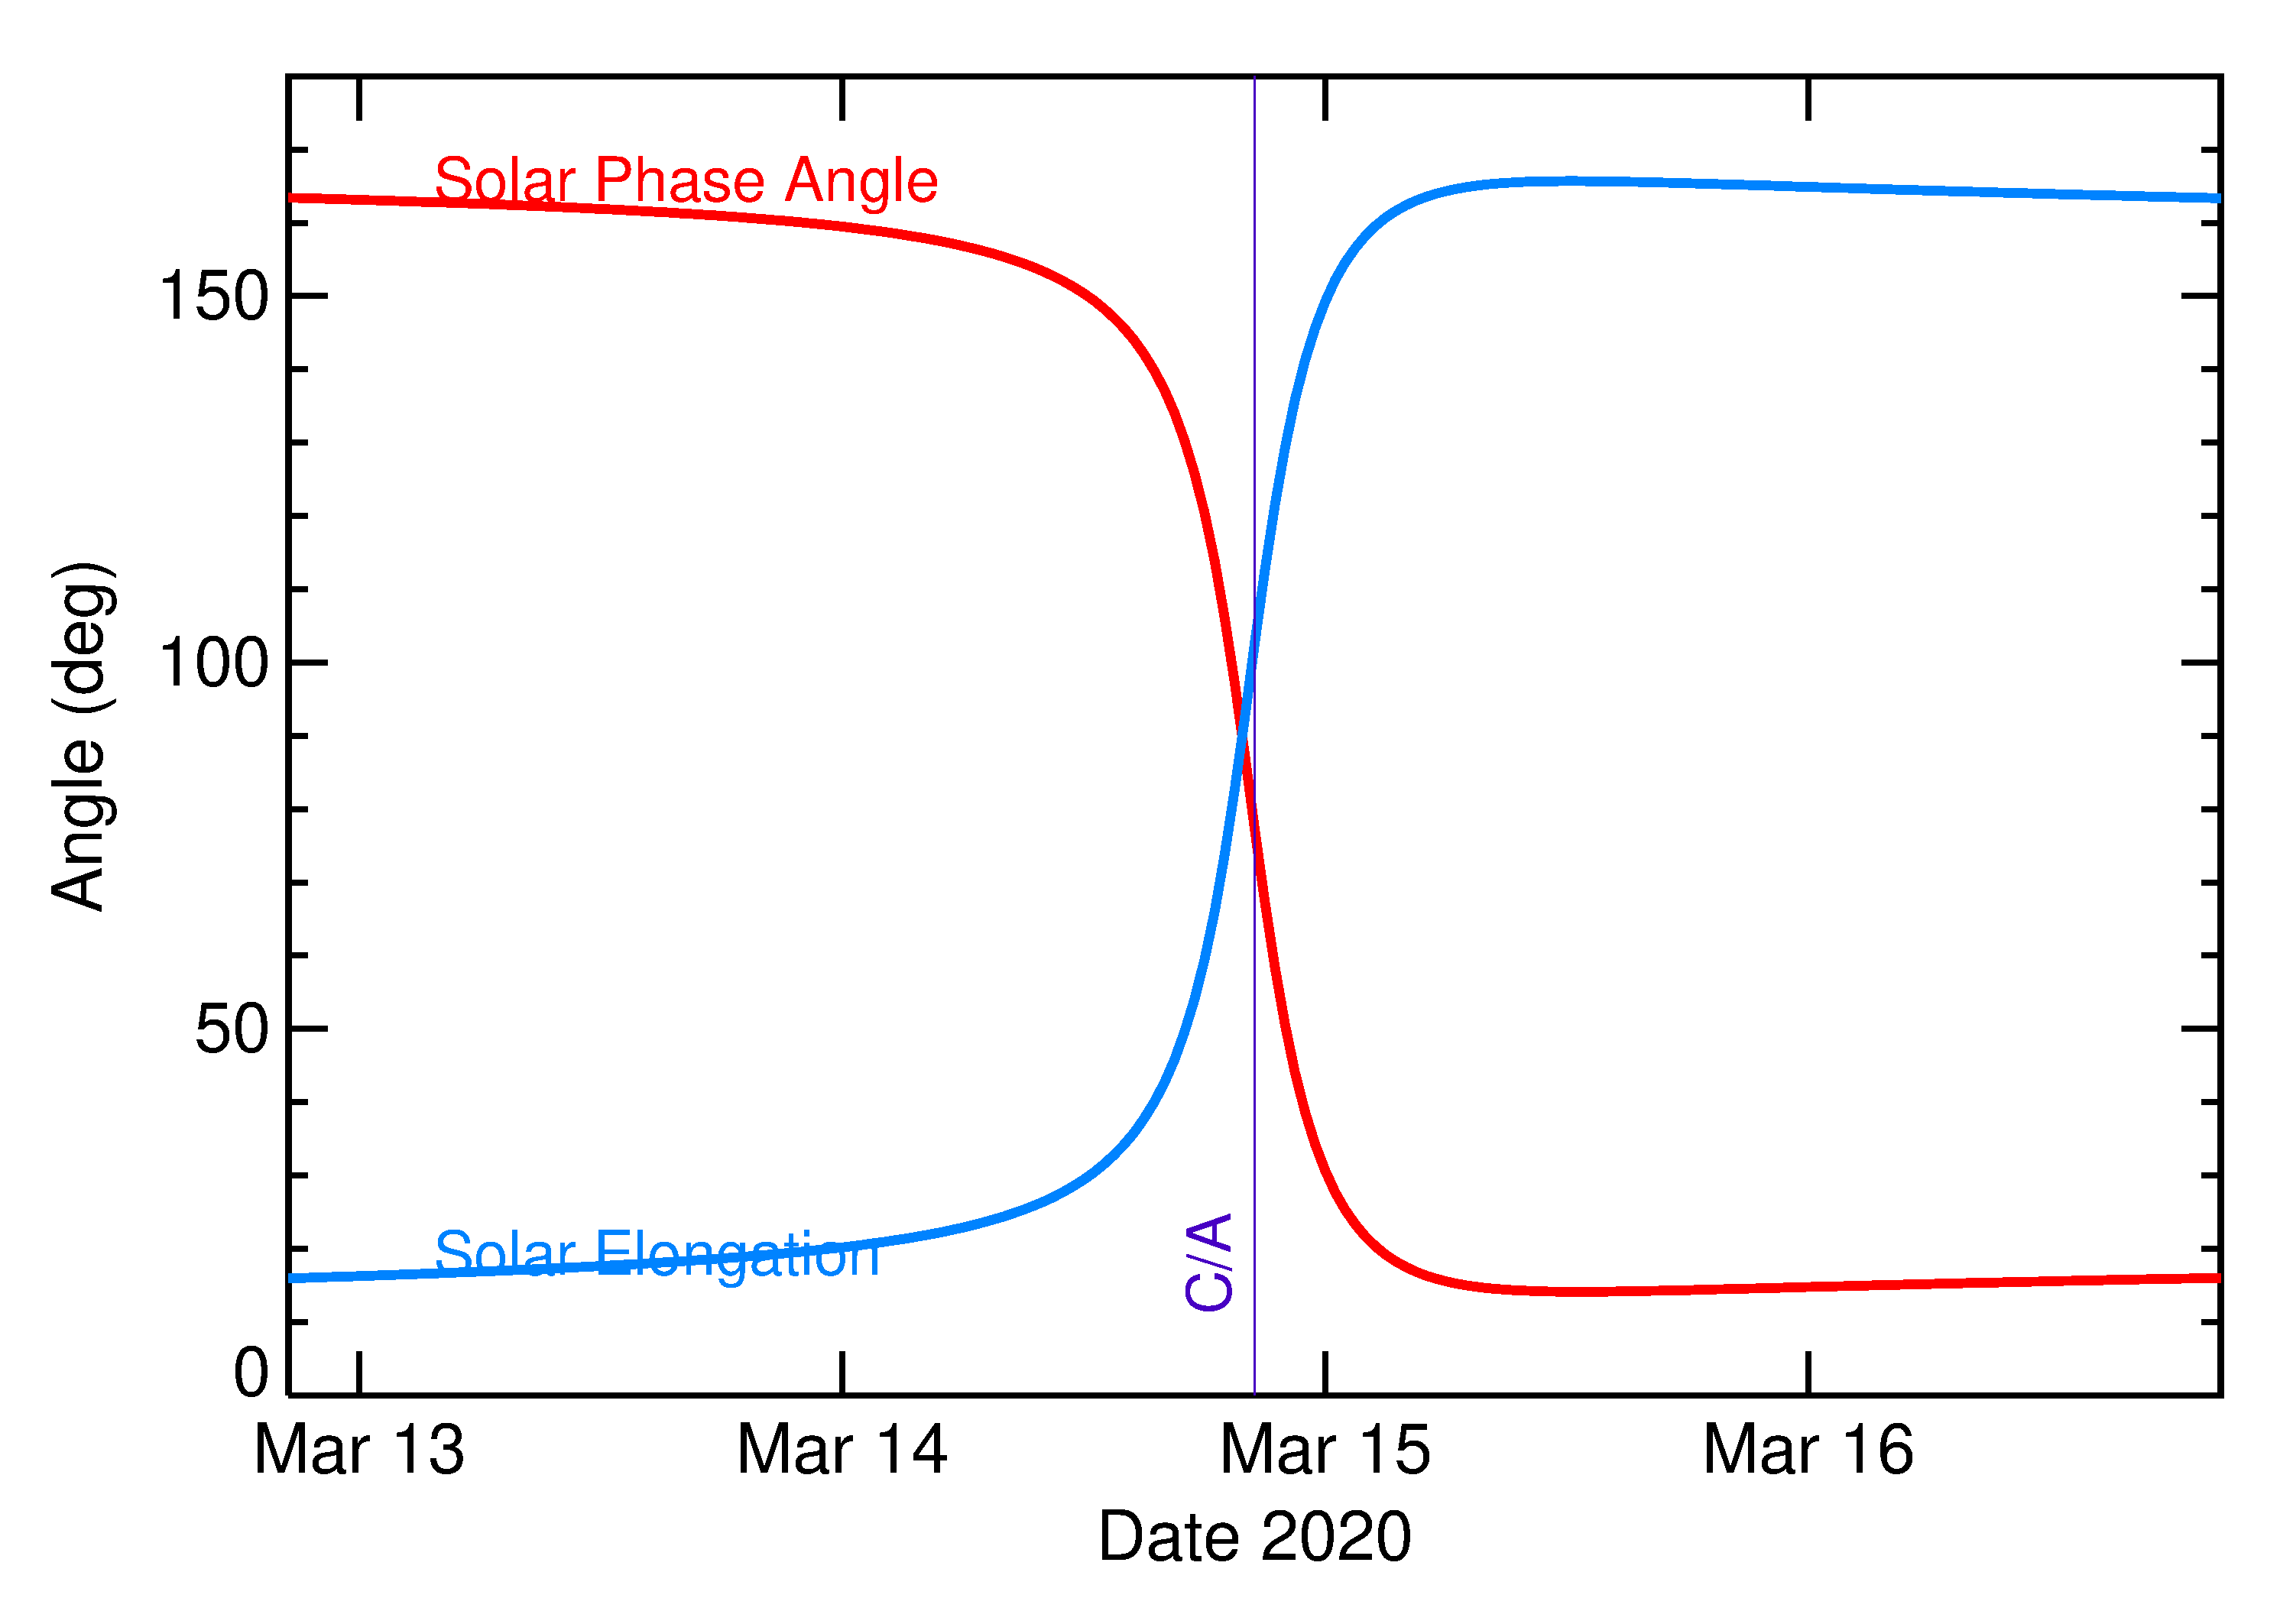 Solar Elongation and Solar Phase Angle of 2020 FD2 in the days around closest approach